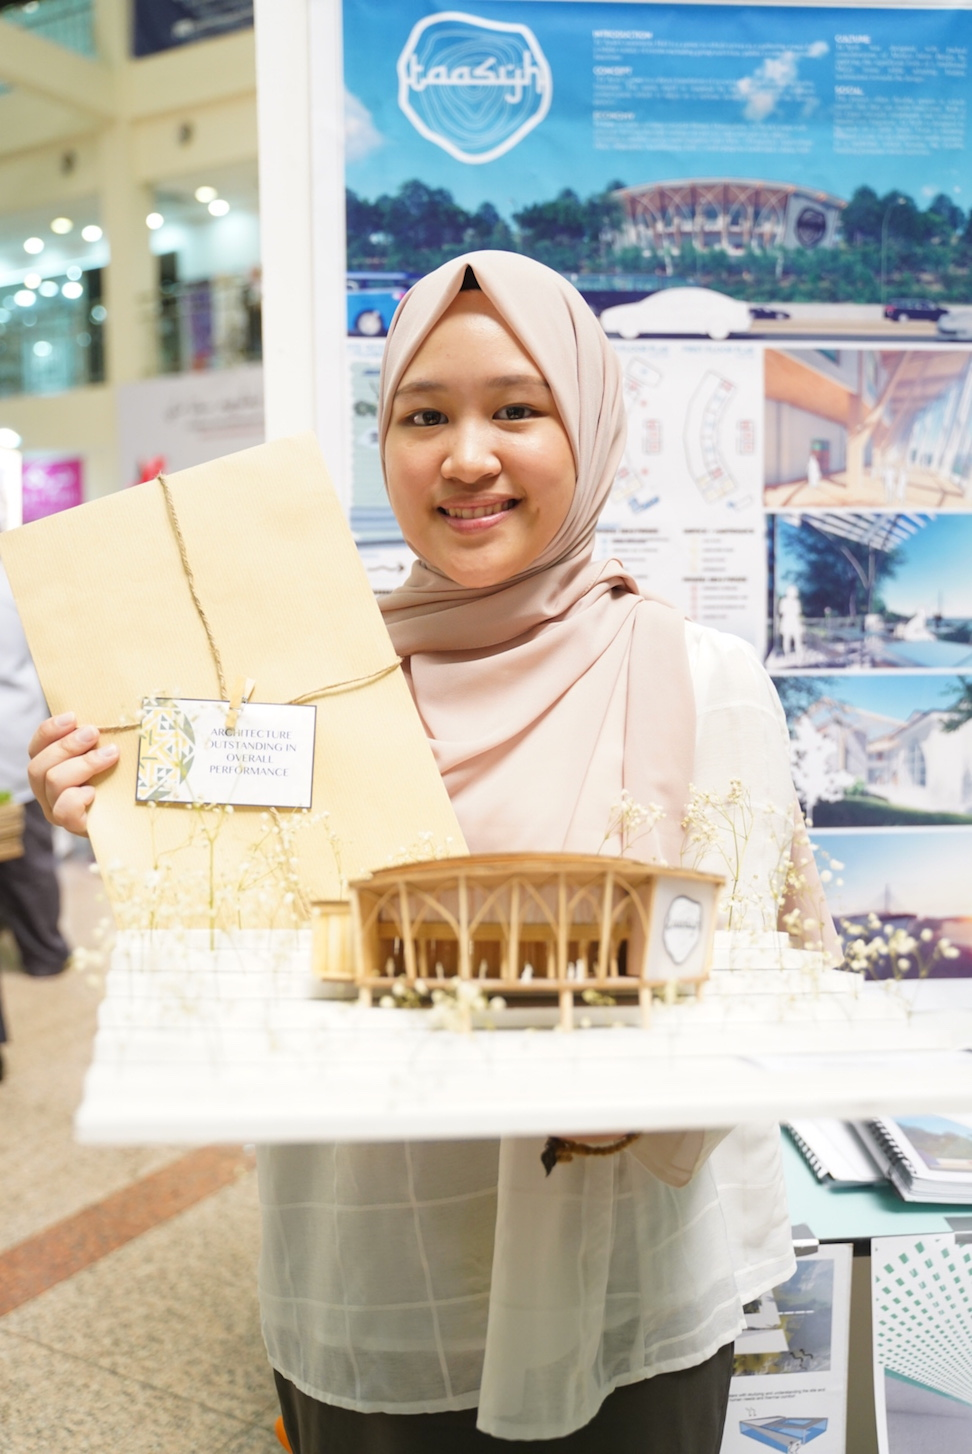 Dayangku Wafa Wahidah binti Pengiran Zuaini receives an award for the Outstanding Overall Performance for Architecture Design